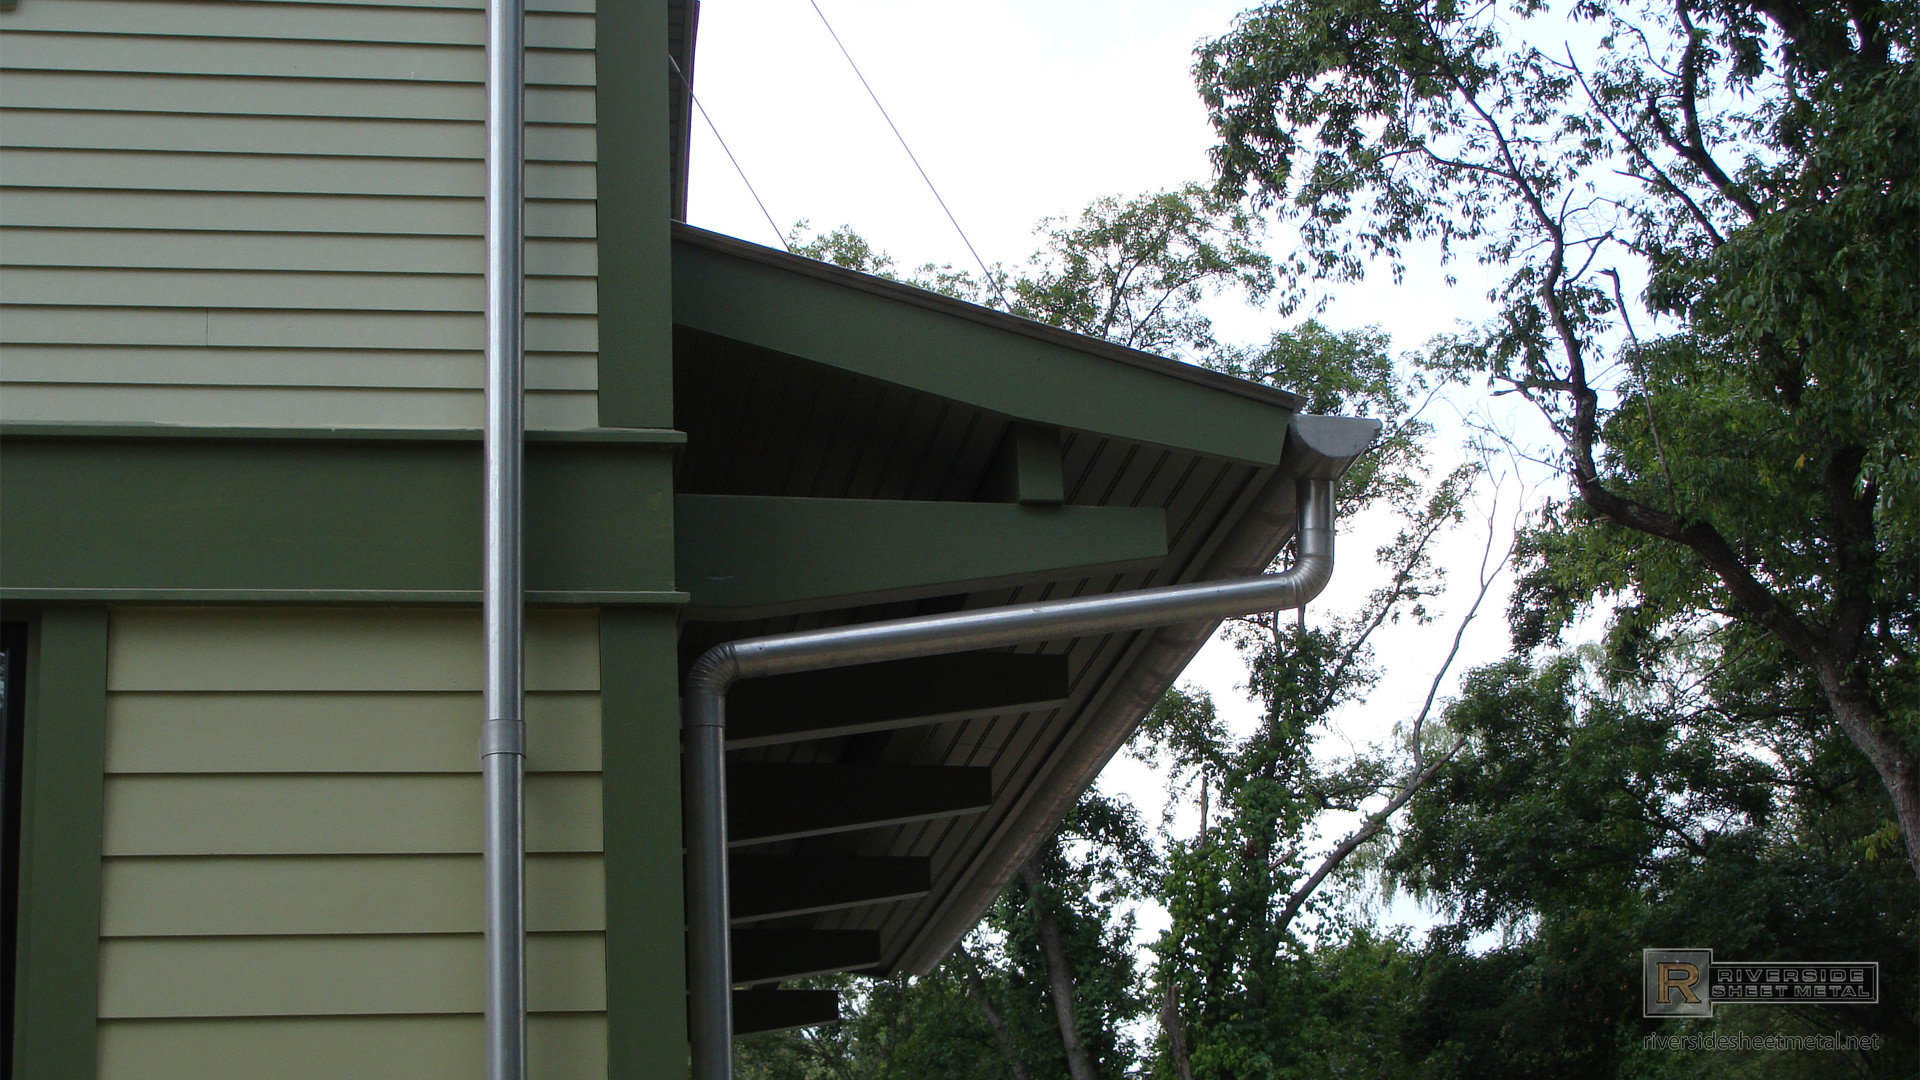 Tcsii Half Round Single Bead Gutter Installation